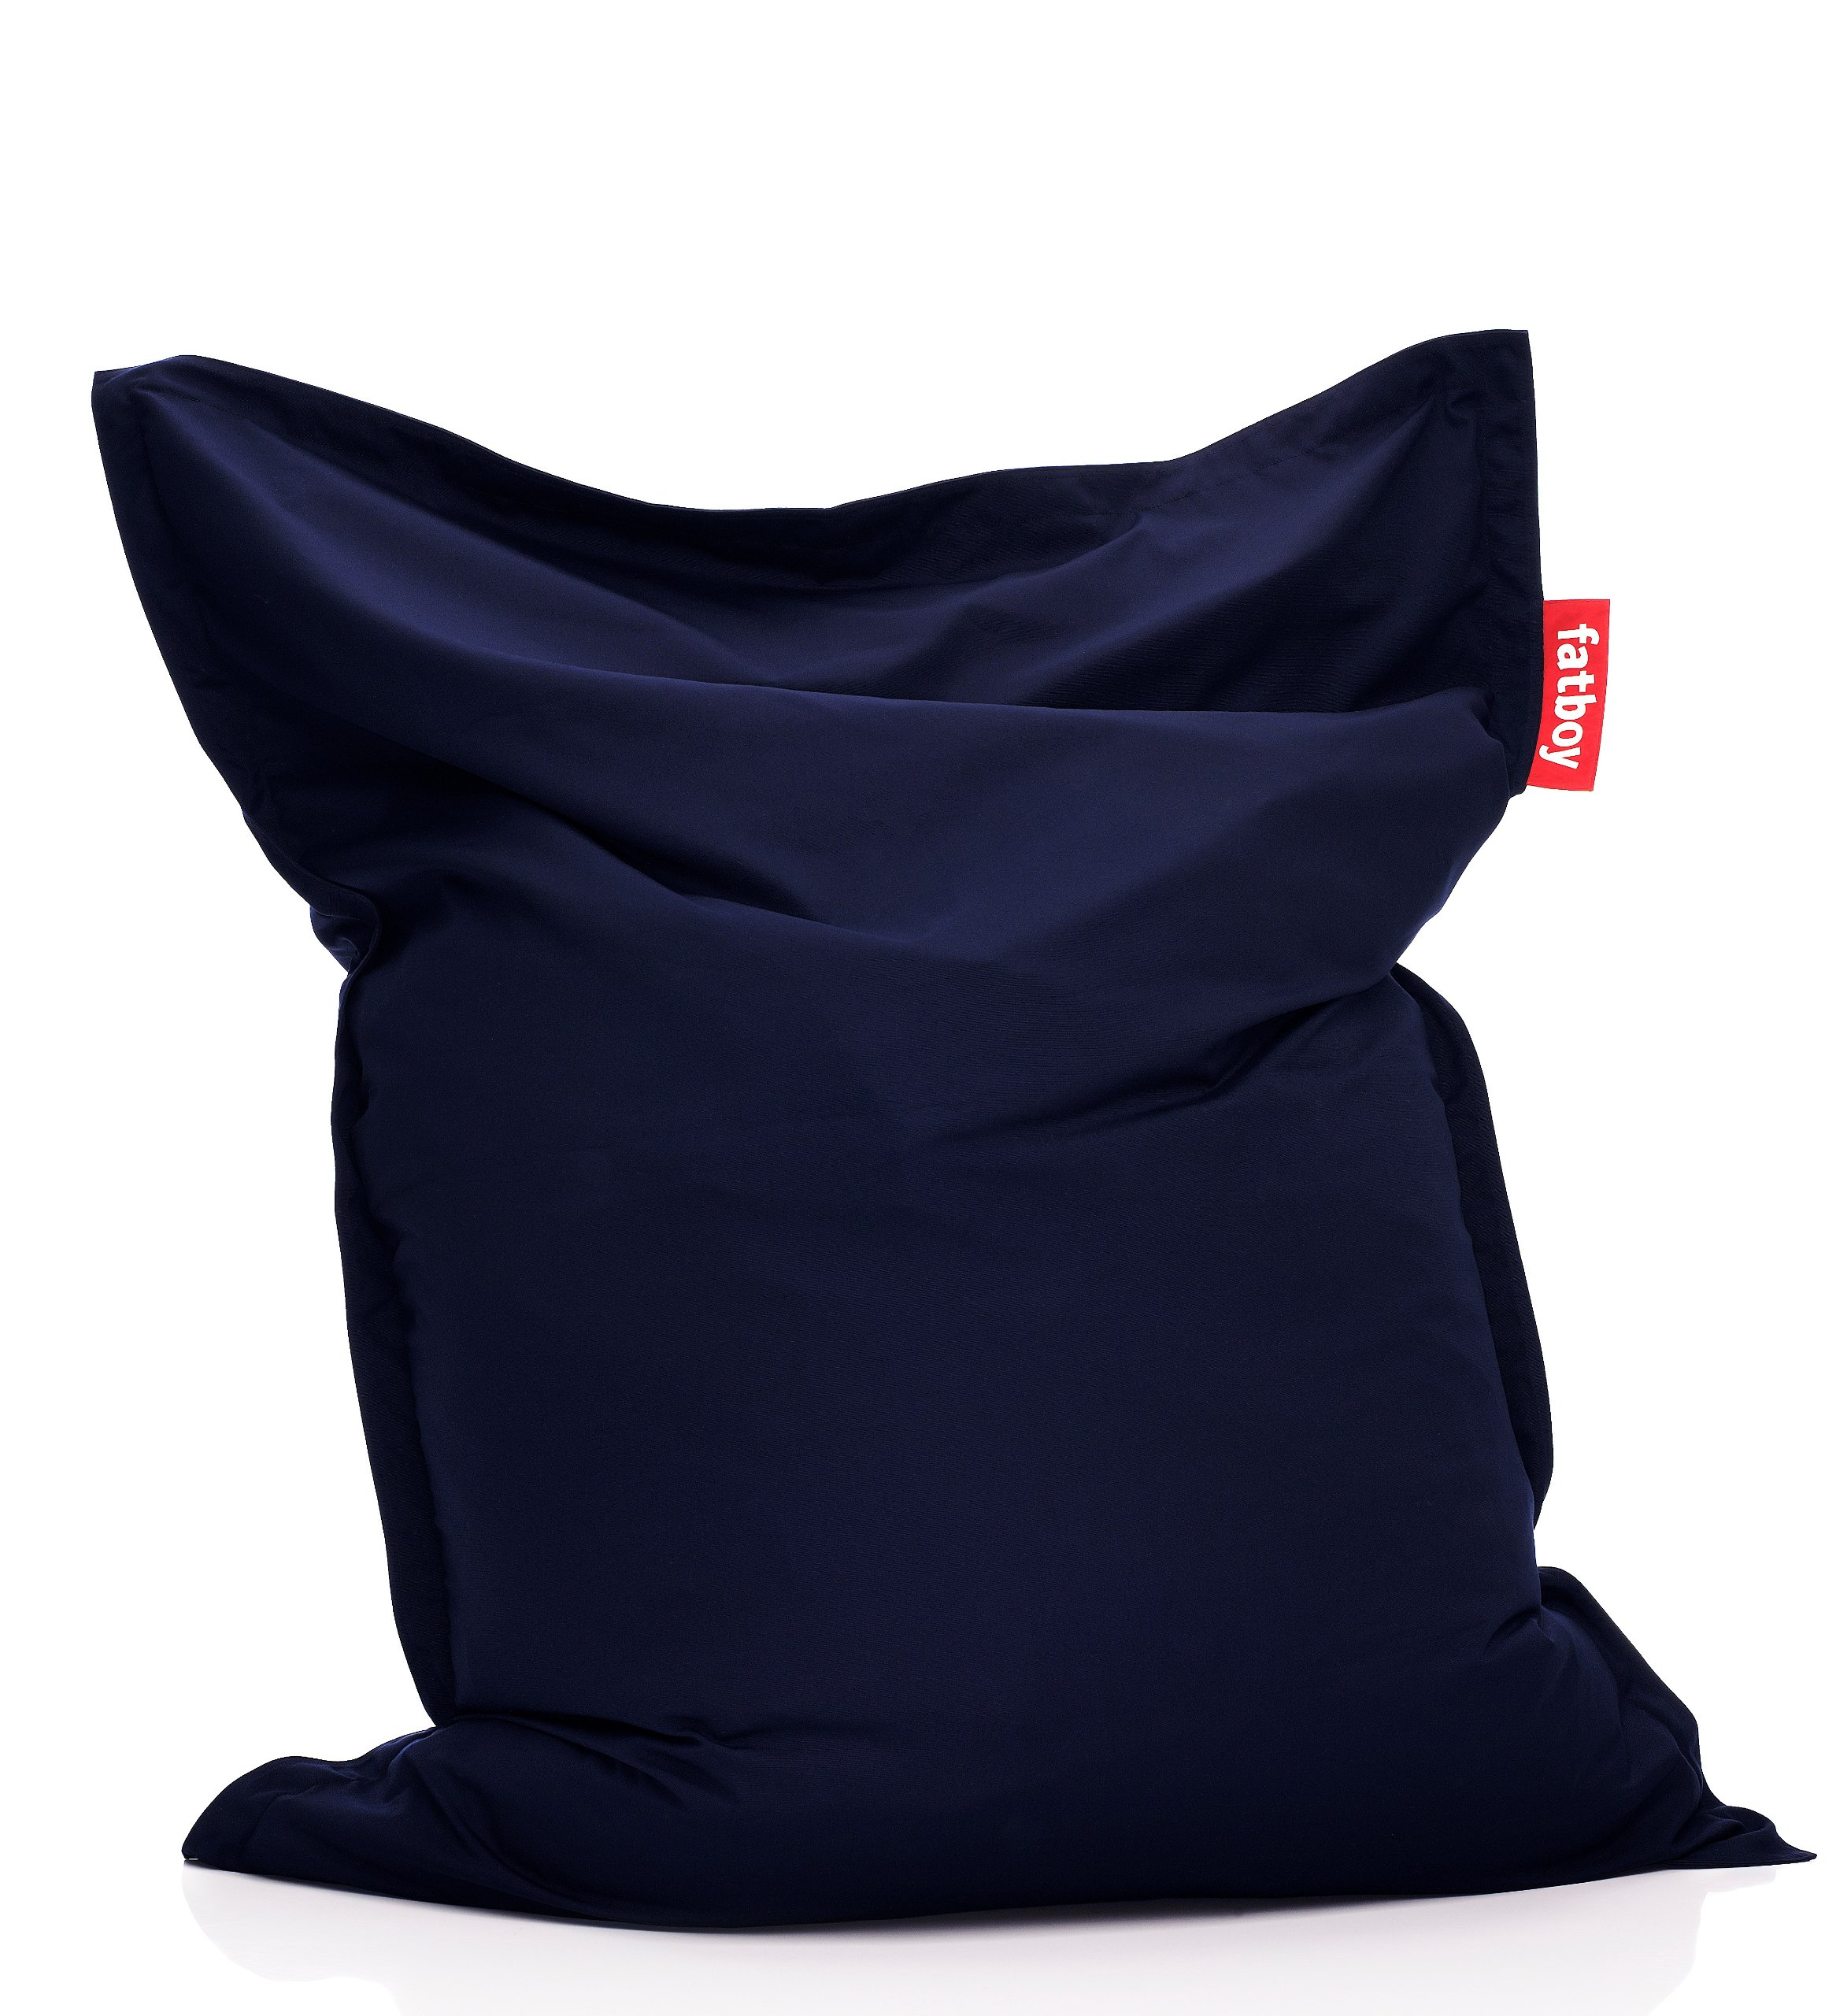 Fatboy The Original Outdoor Bean Bag Chair - Navy Blue